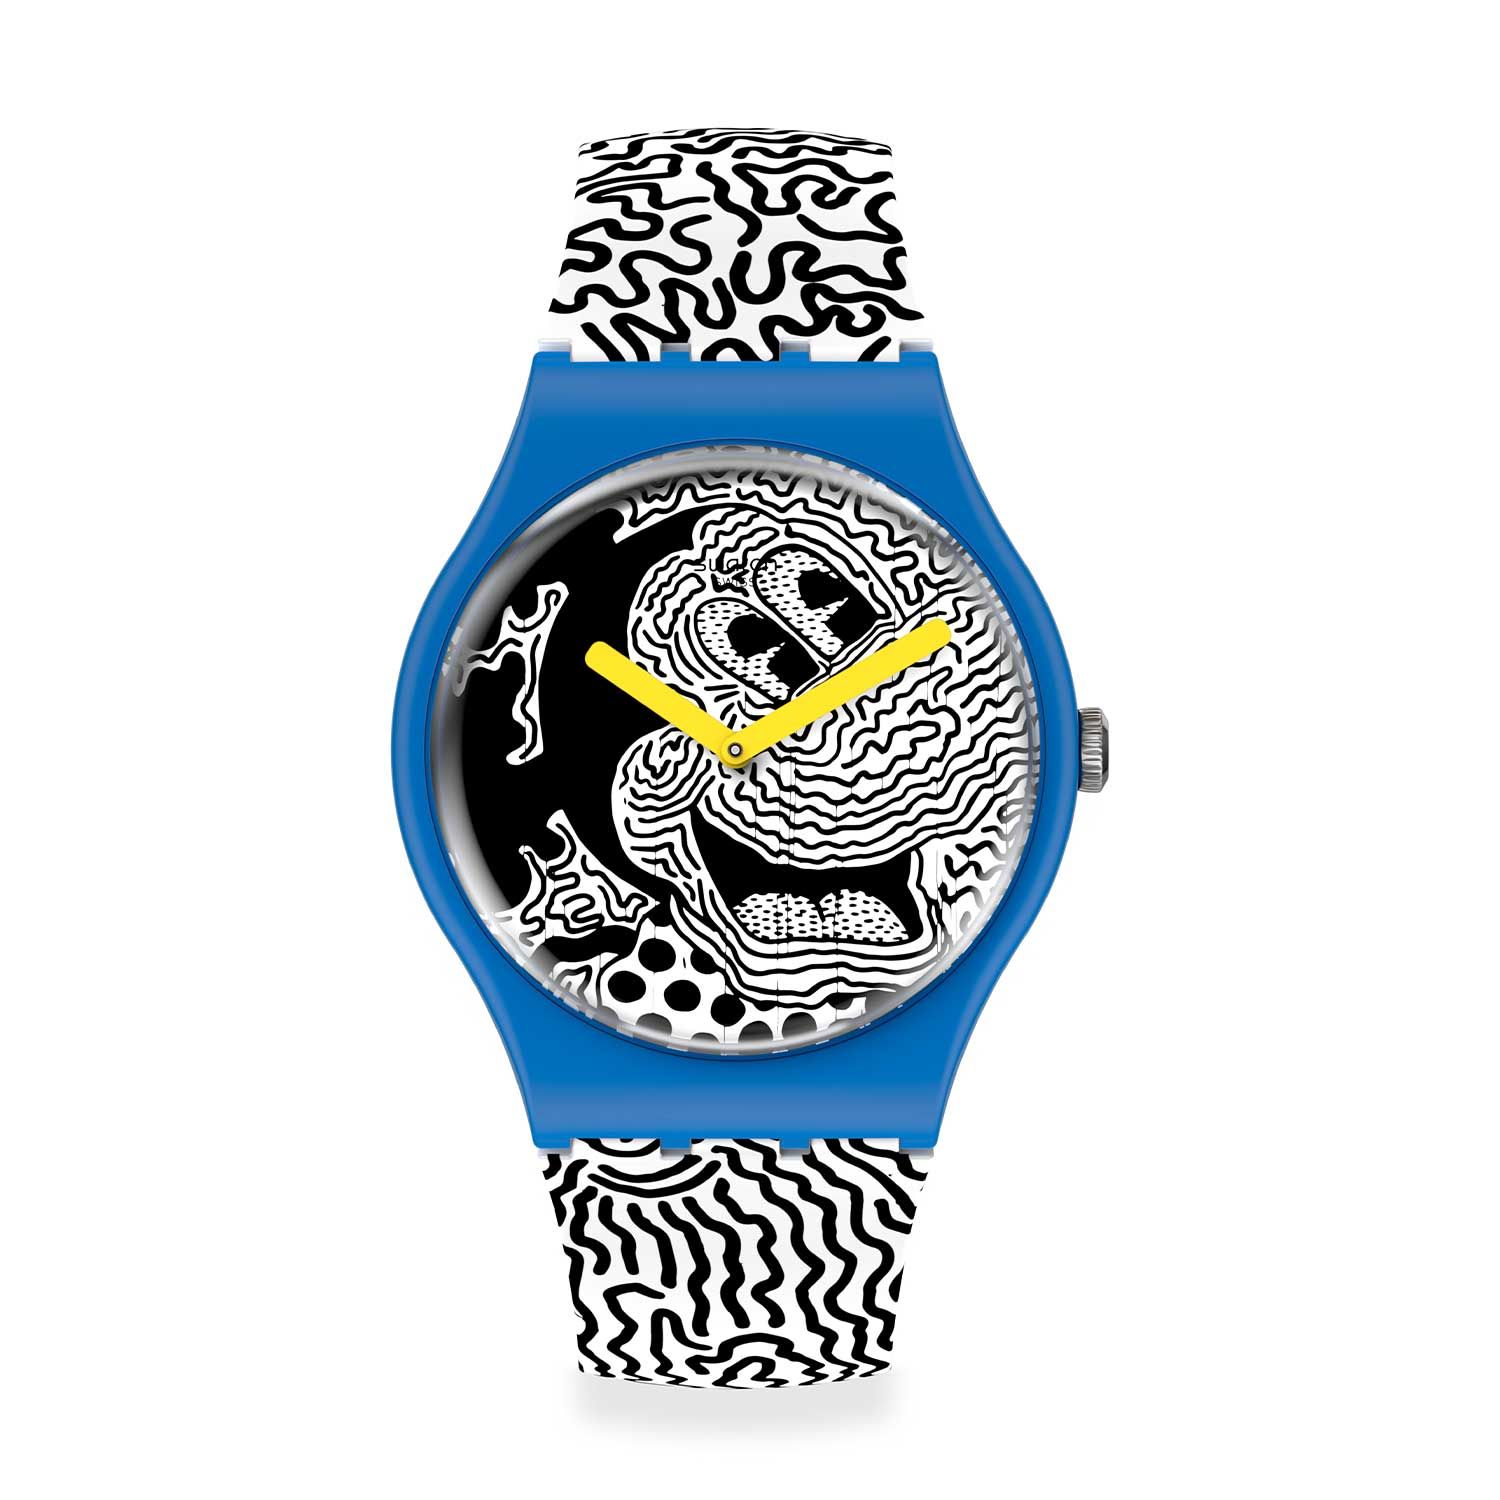 01 Swatch X Keith Haring %E2%80%93 The Mickey Watch - Swatch X Keith Haring - Đồng hồ Mickey siêu ấn tượng